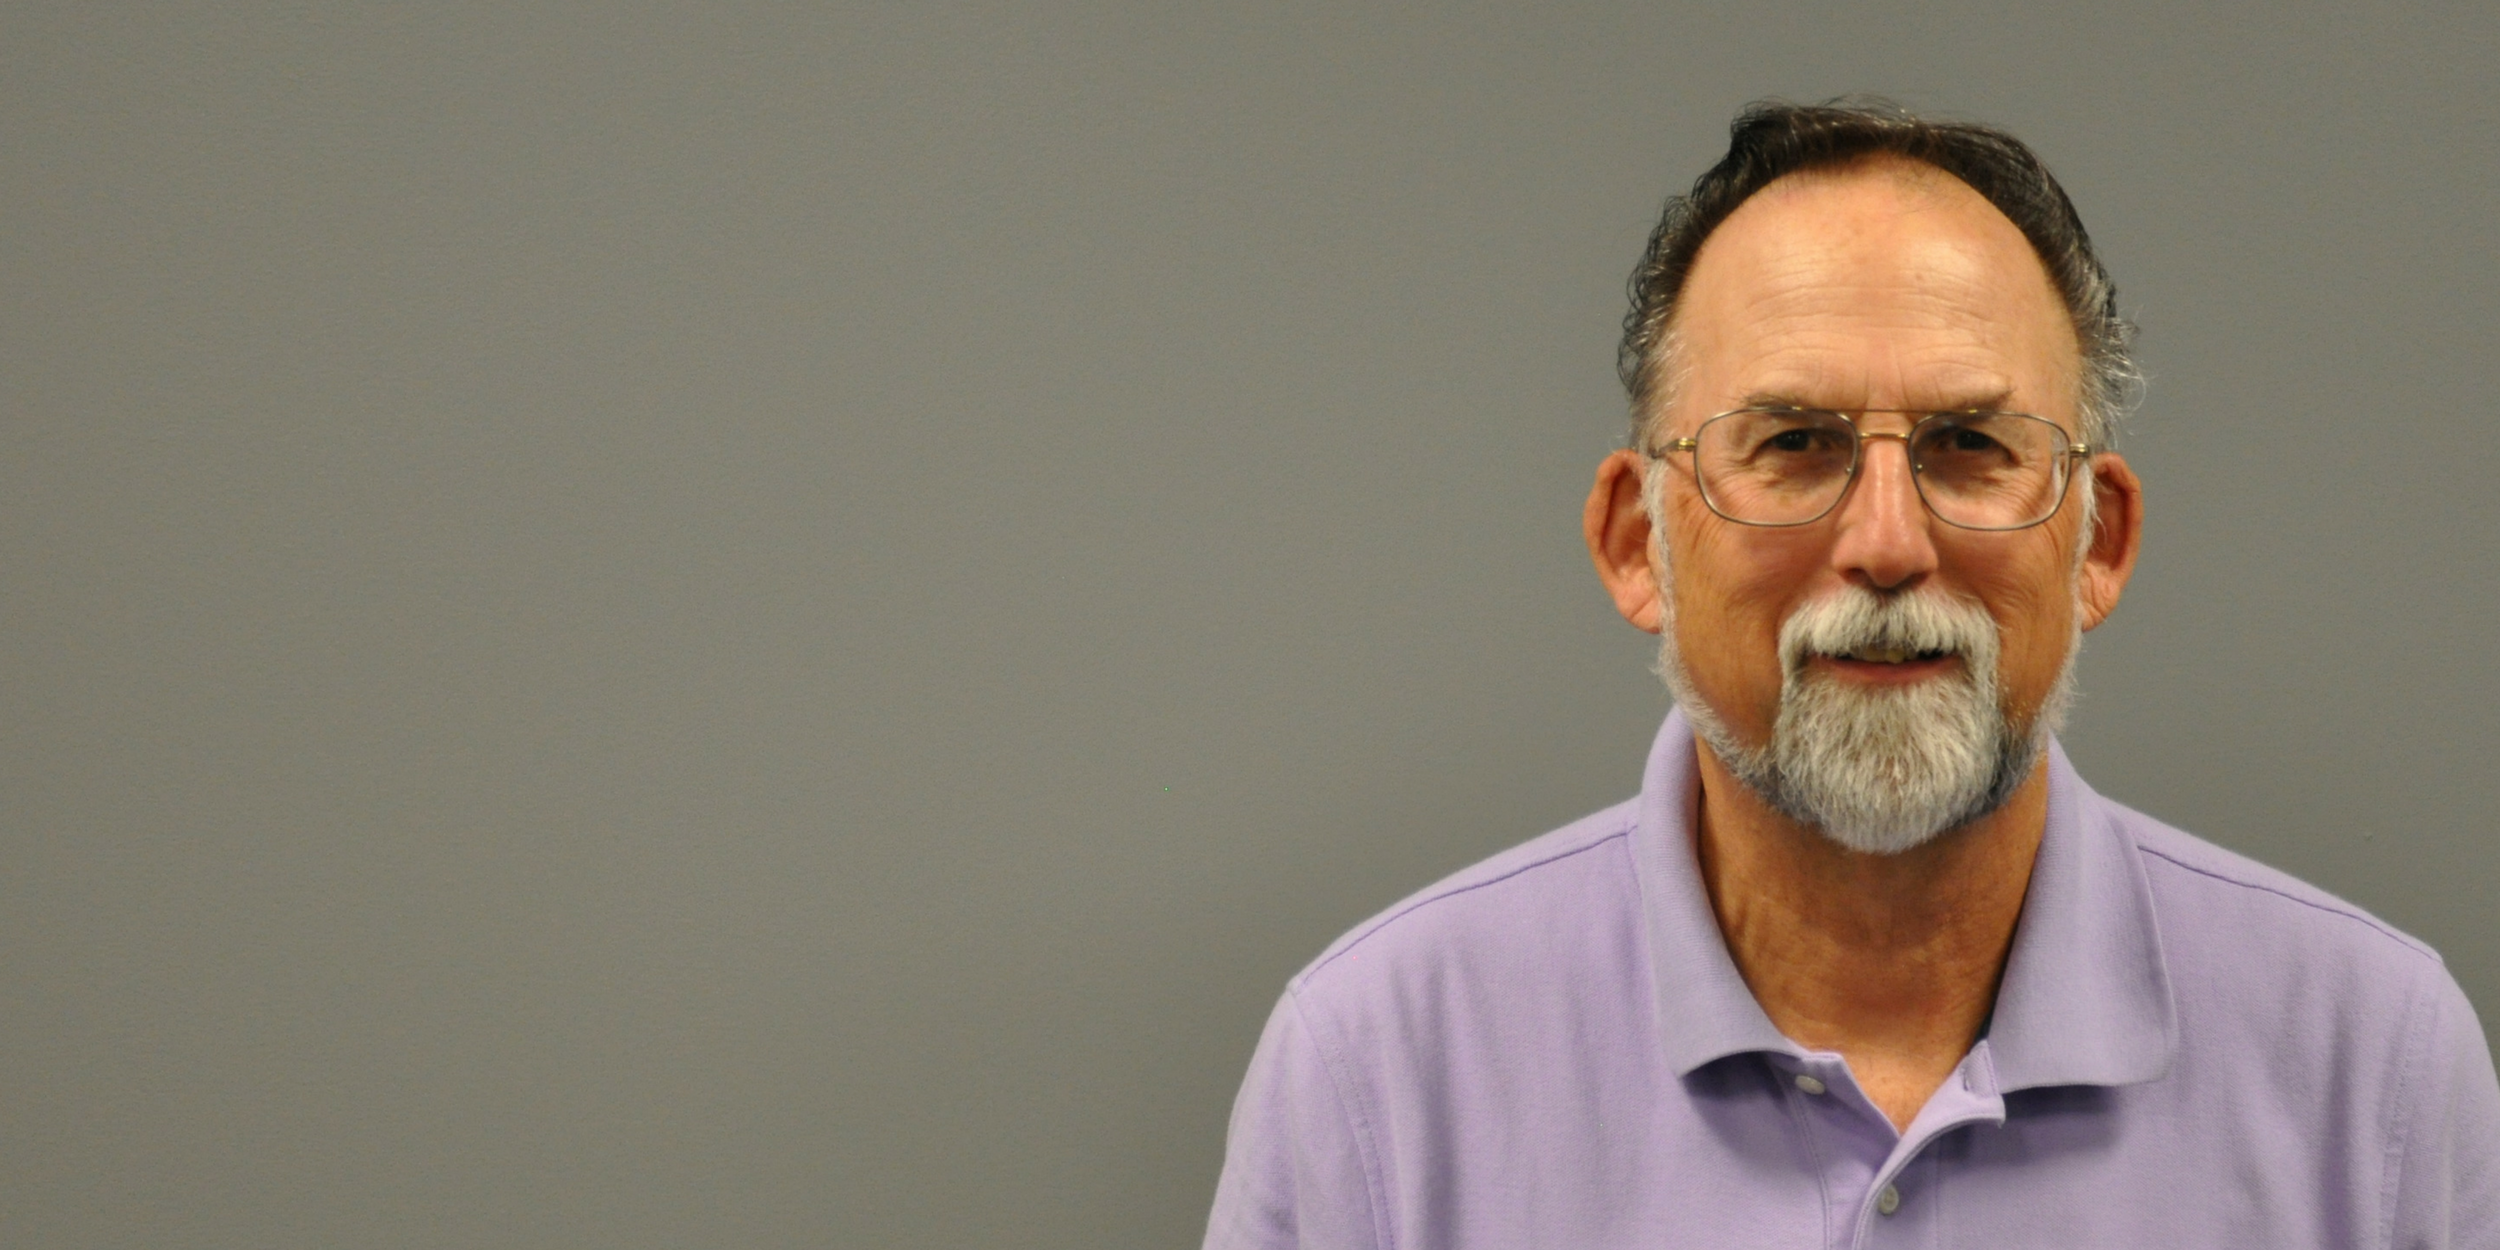 IRVIN CHAMBERS - CAD SPECIALIST